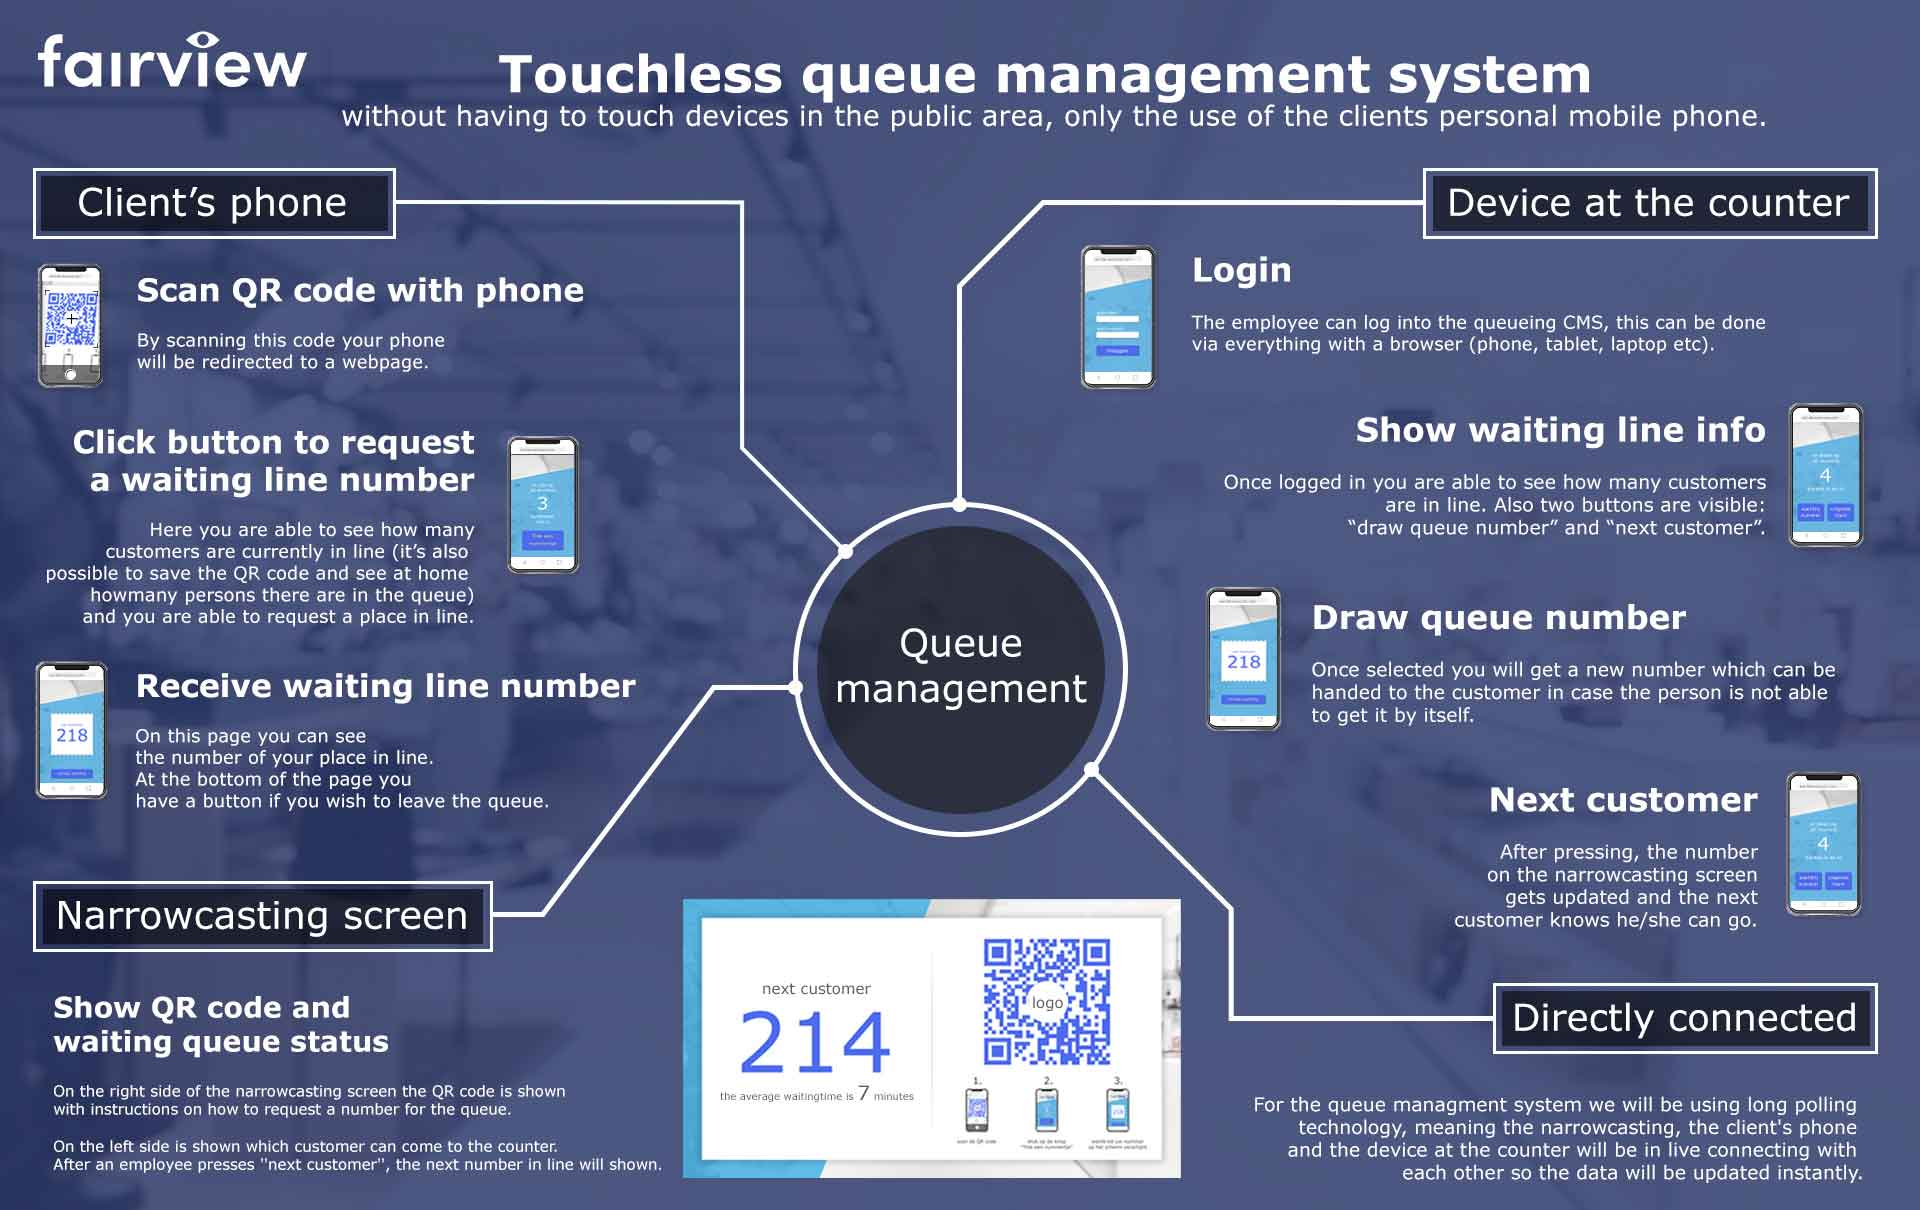 2queue_managment_infographic_english_fairview_small